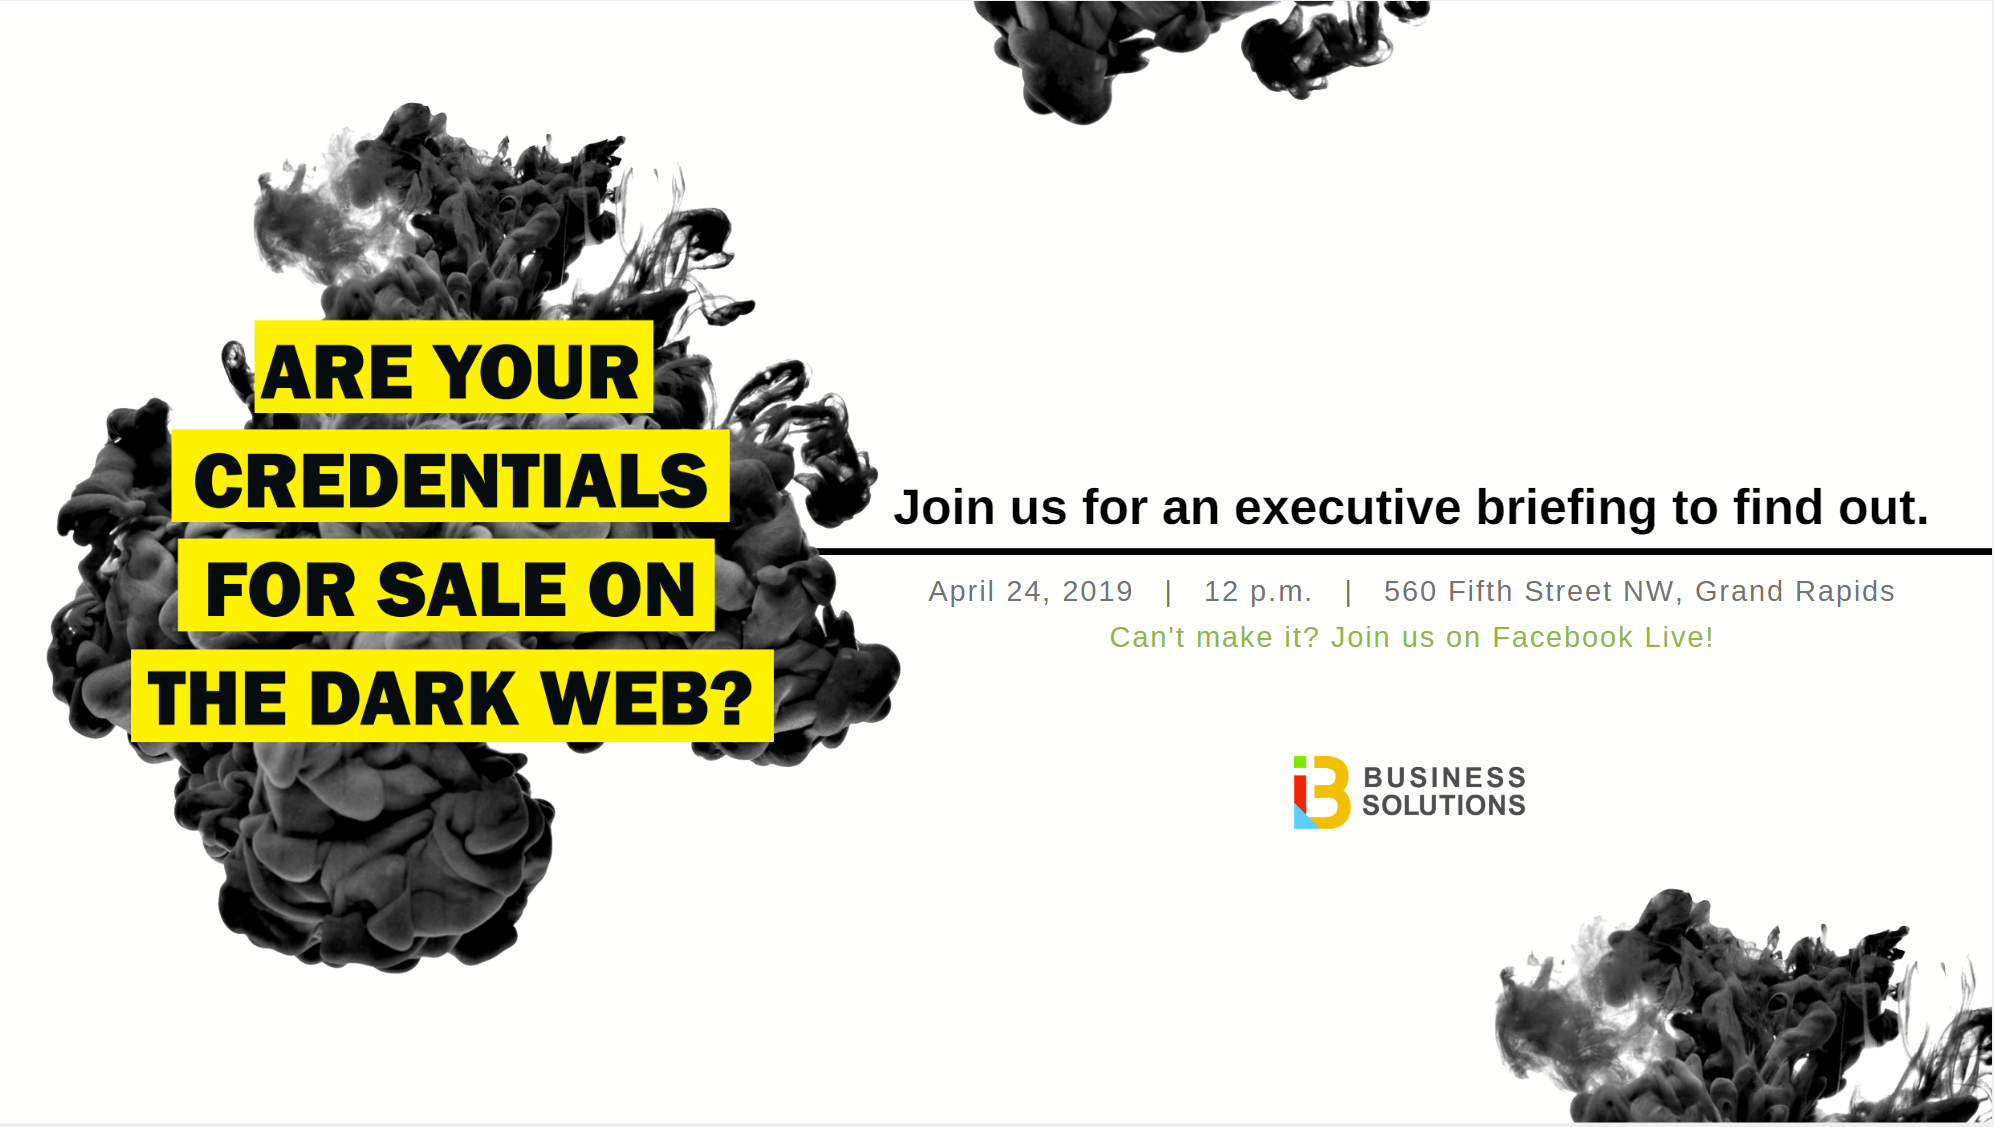 Executive Briefing on April 24: Are Your Credentials on the Web?